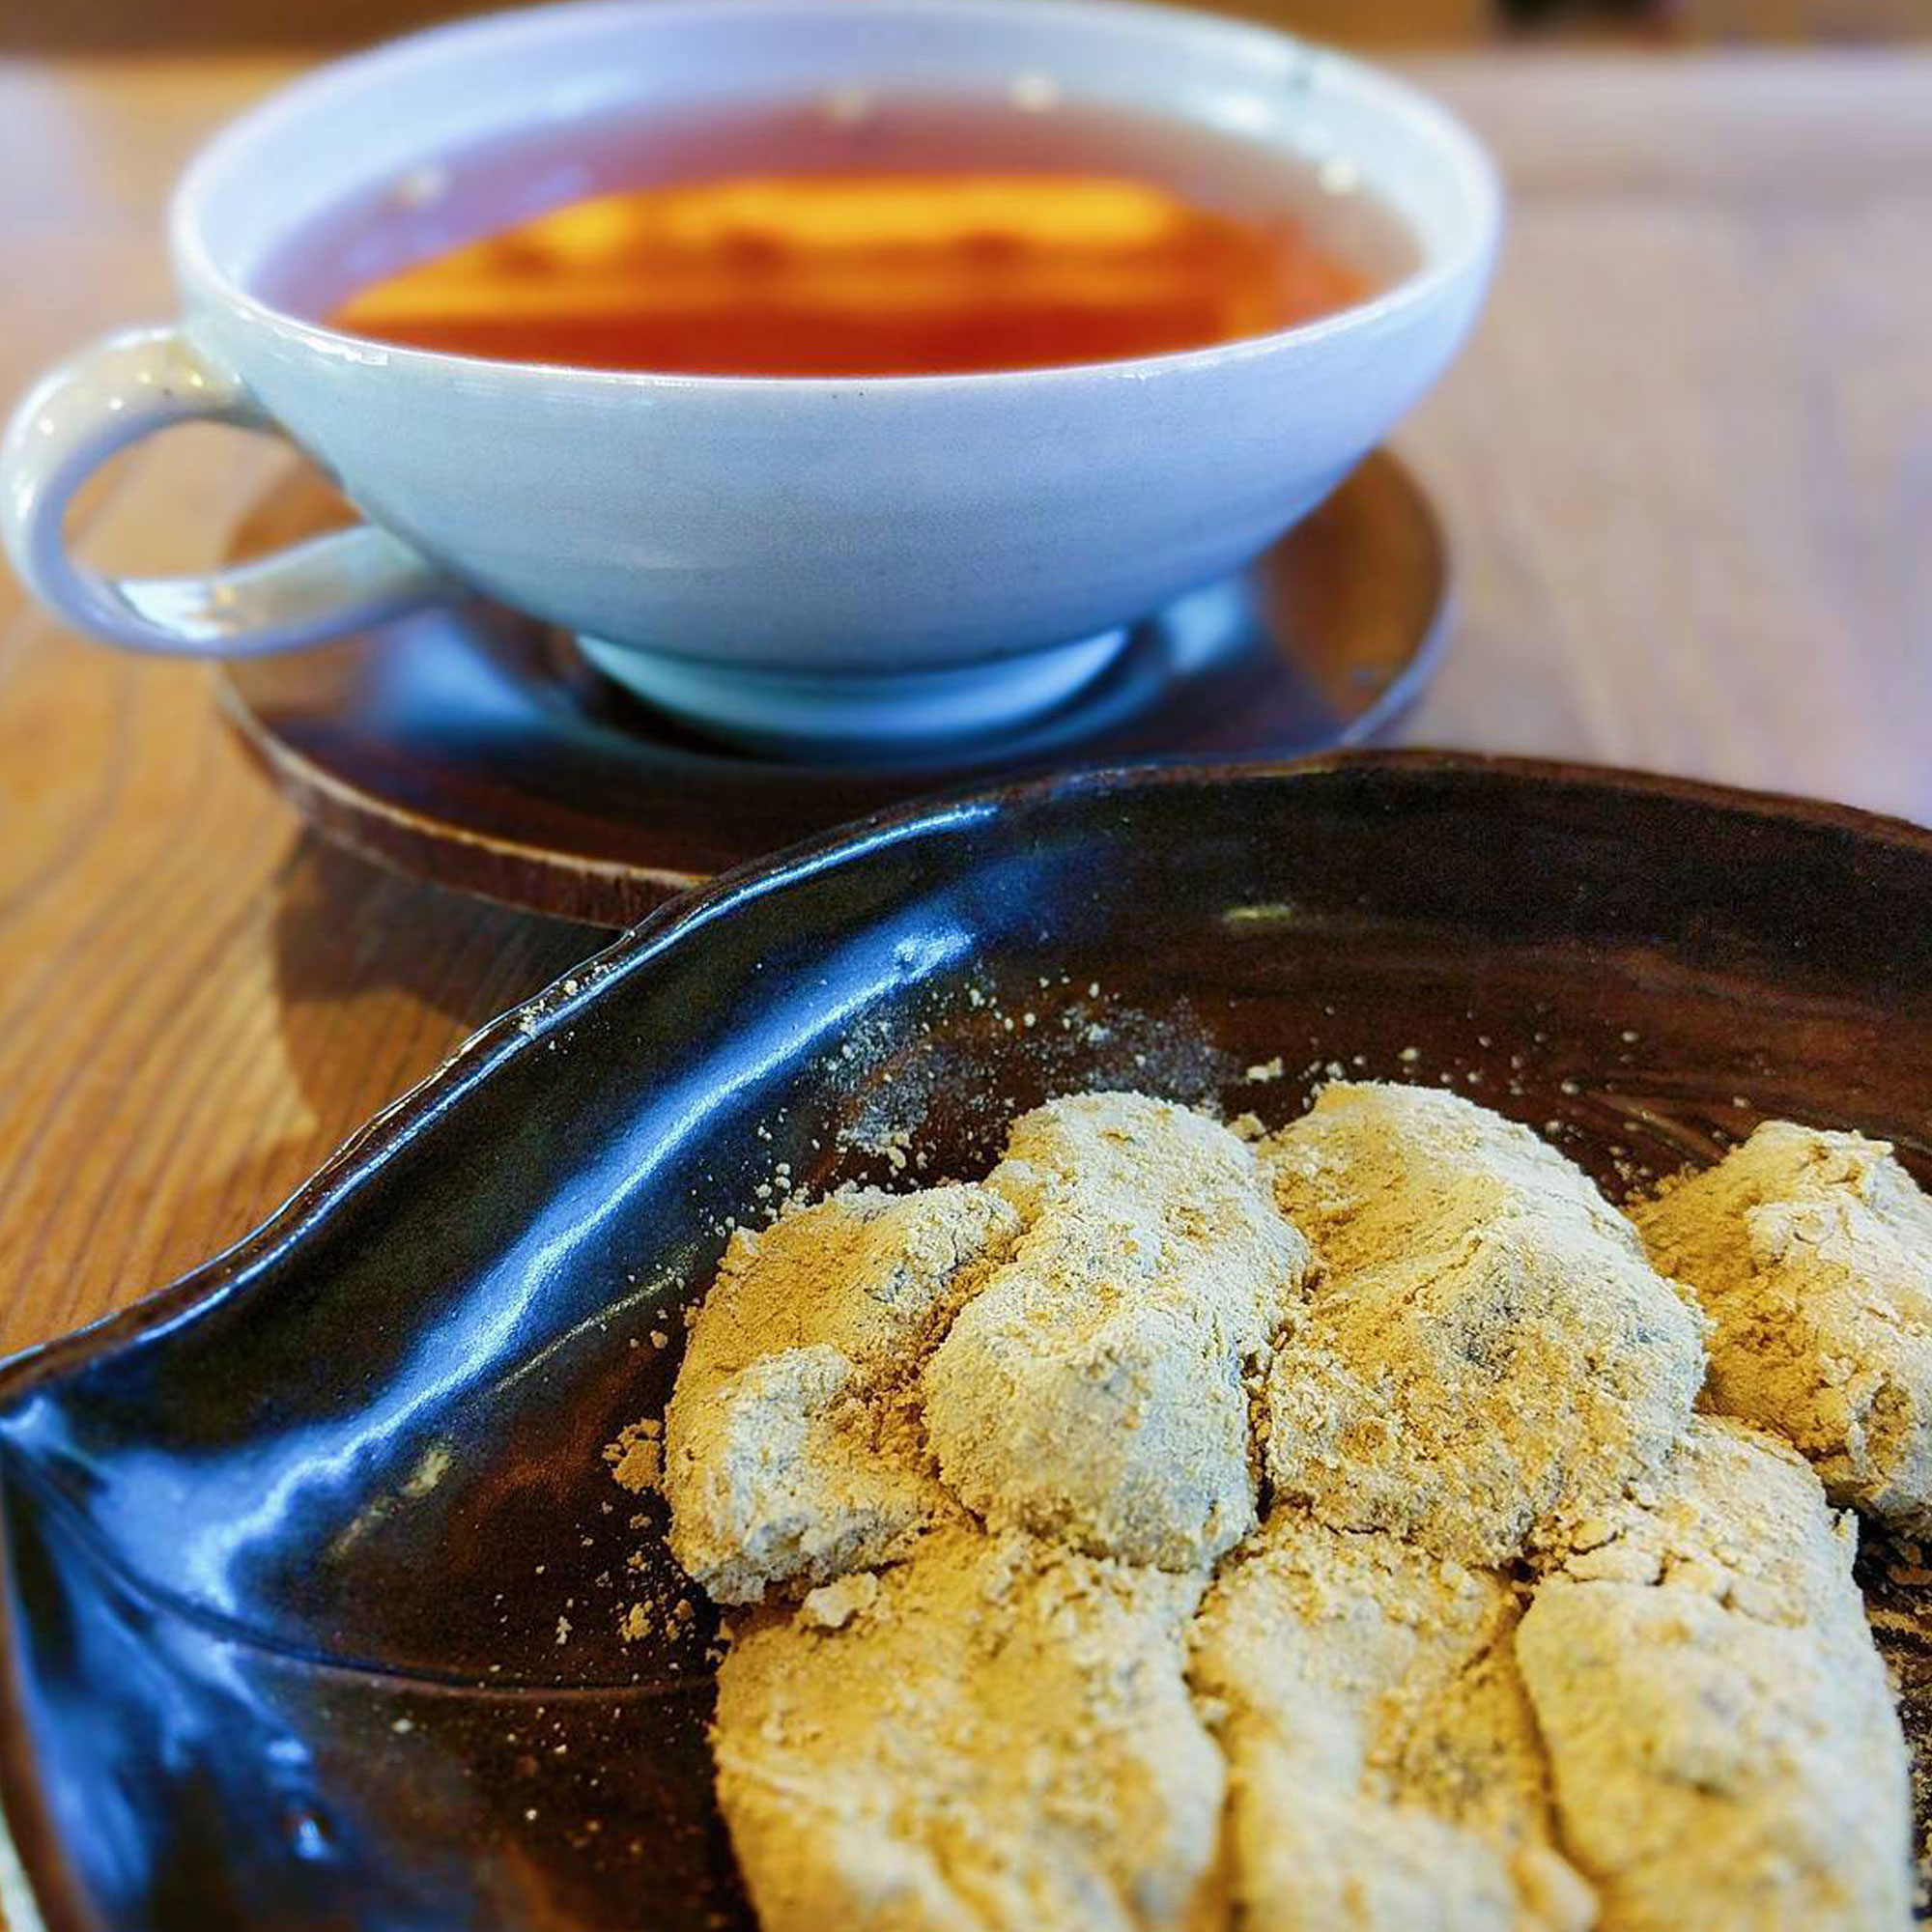 Close up shot of powdered rice cakes and tea in the background.